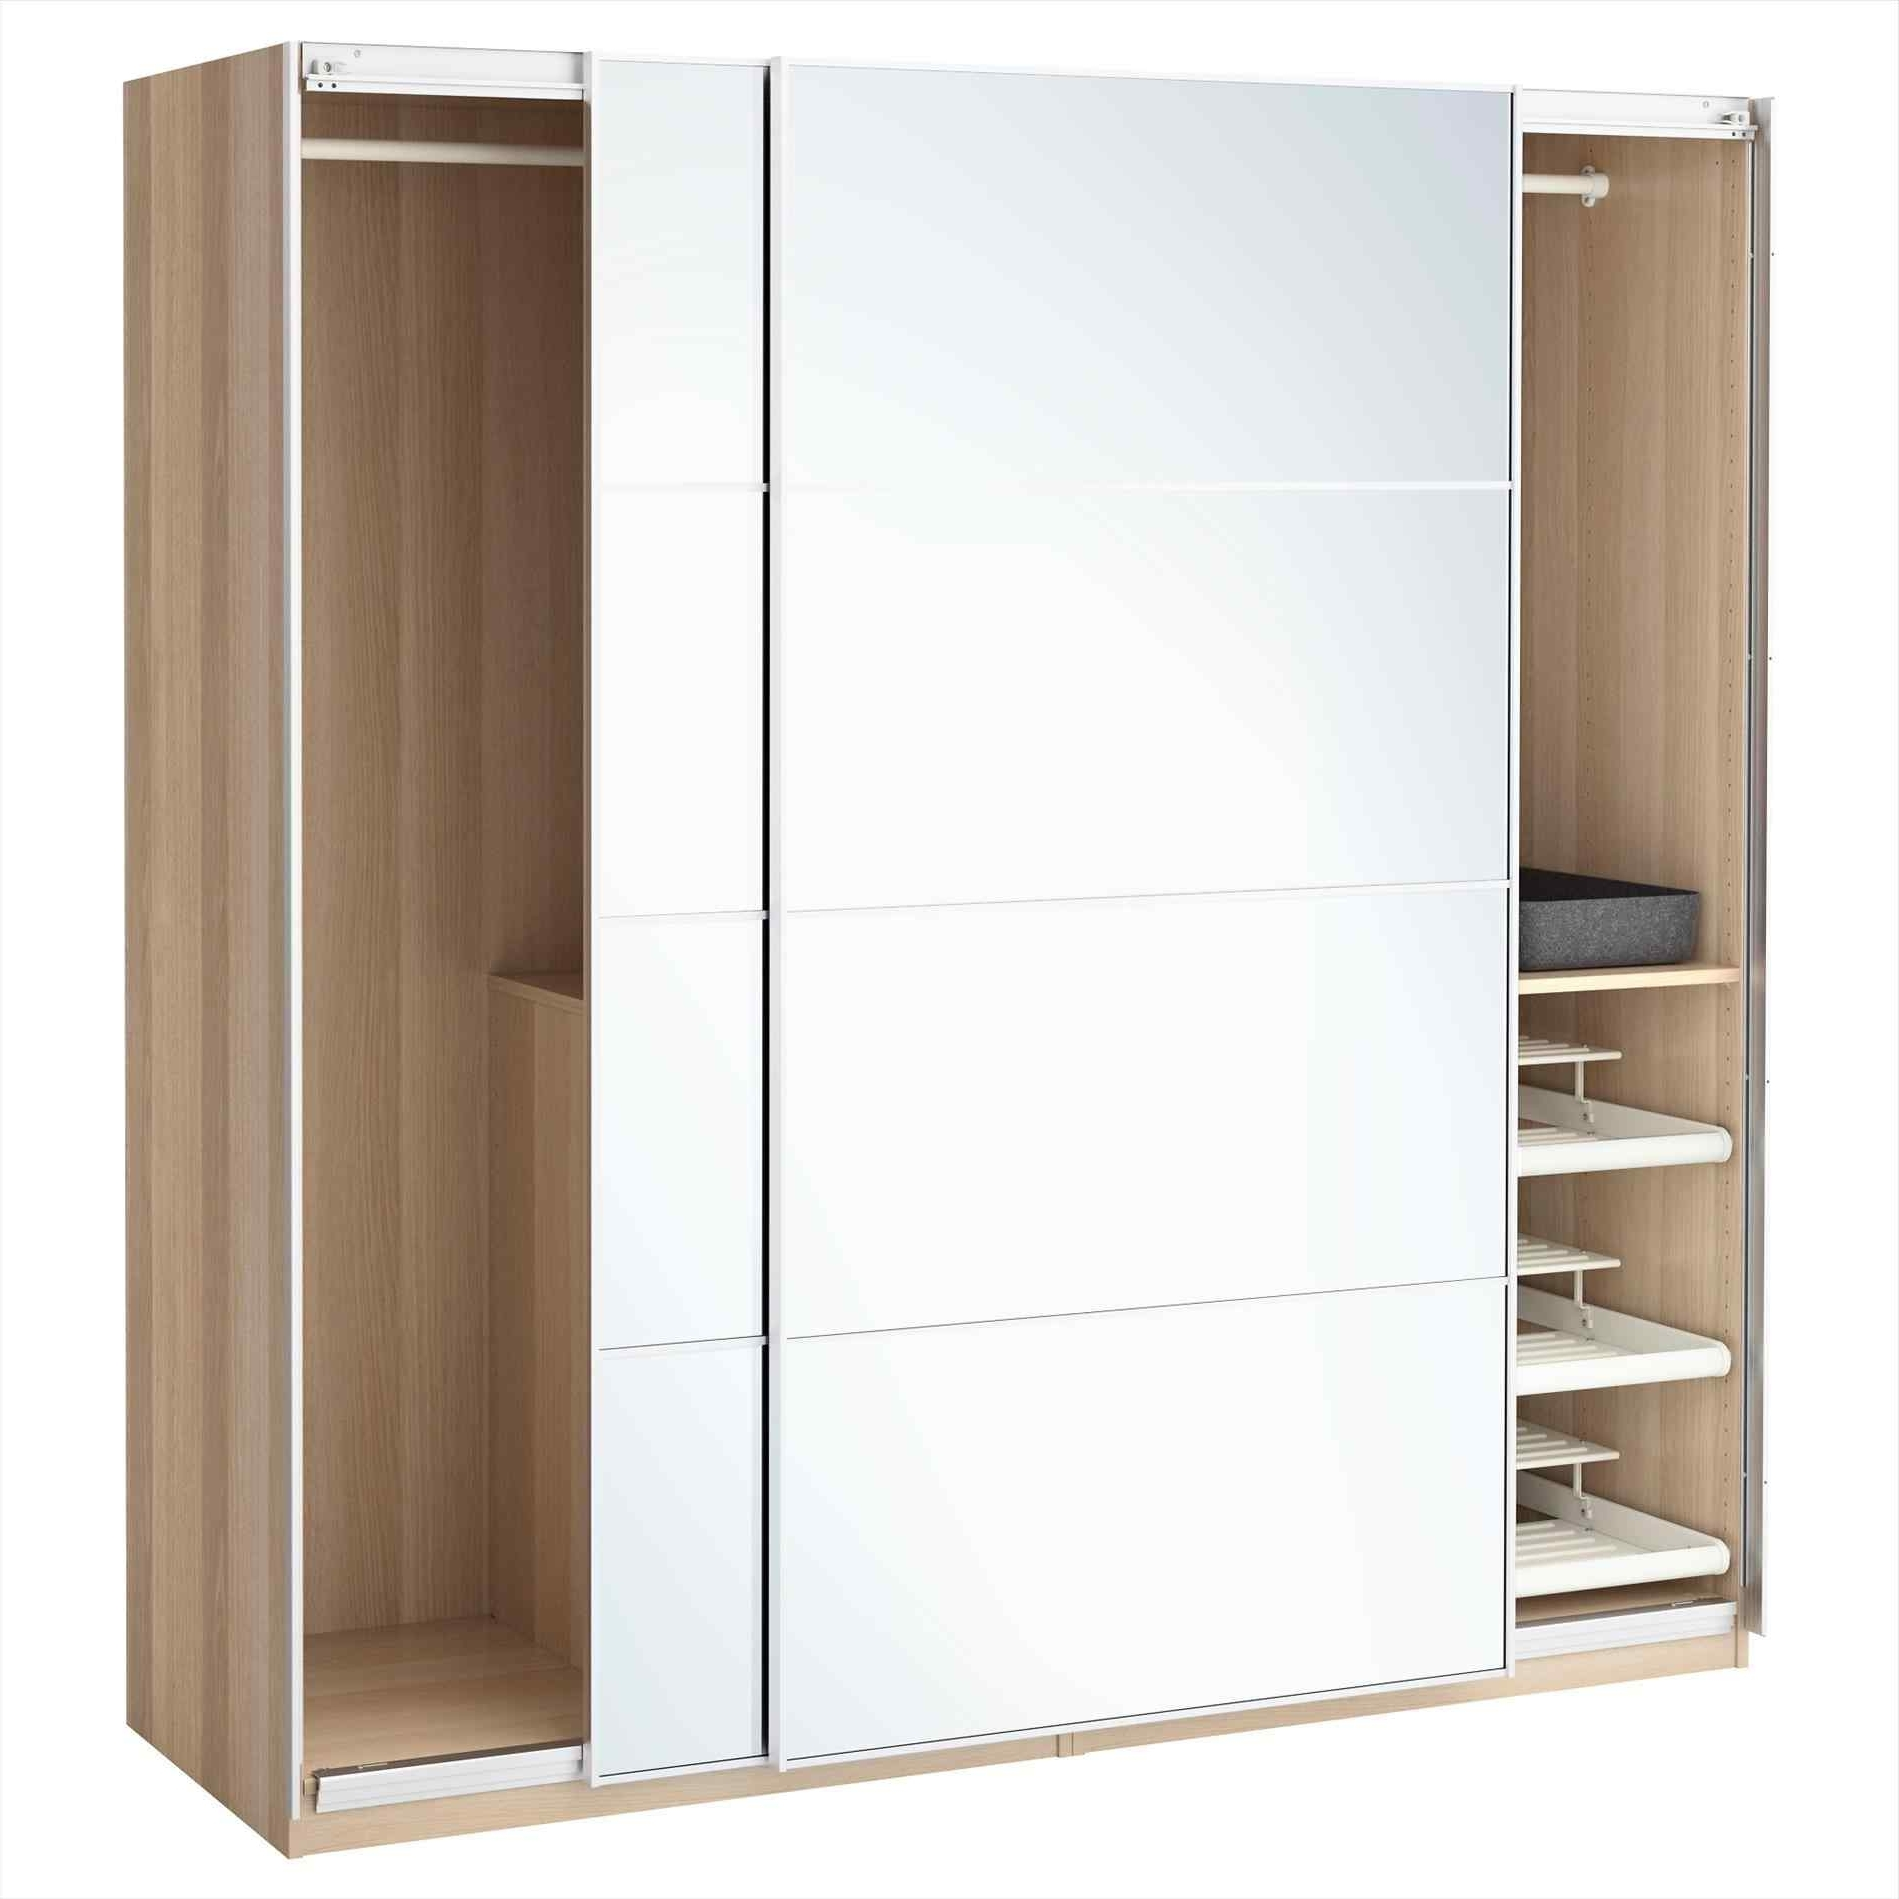 Wardrobe & Armoire : And Bronze Signature Built In Wardrobes With With 2018 Signature Wardrobes (View 12 of 15)